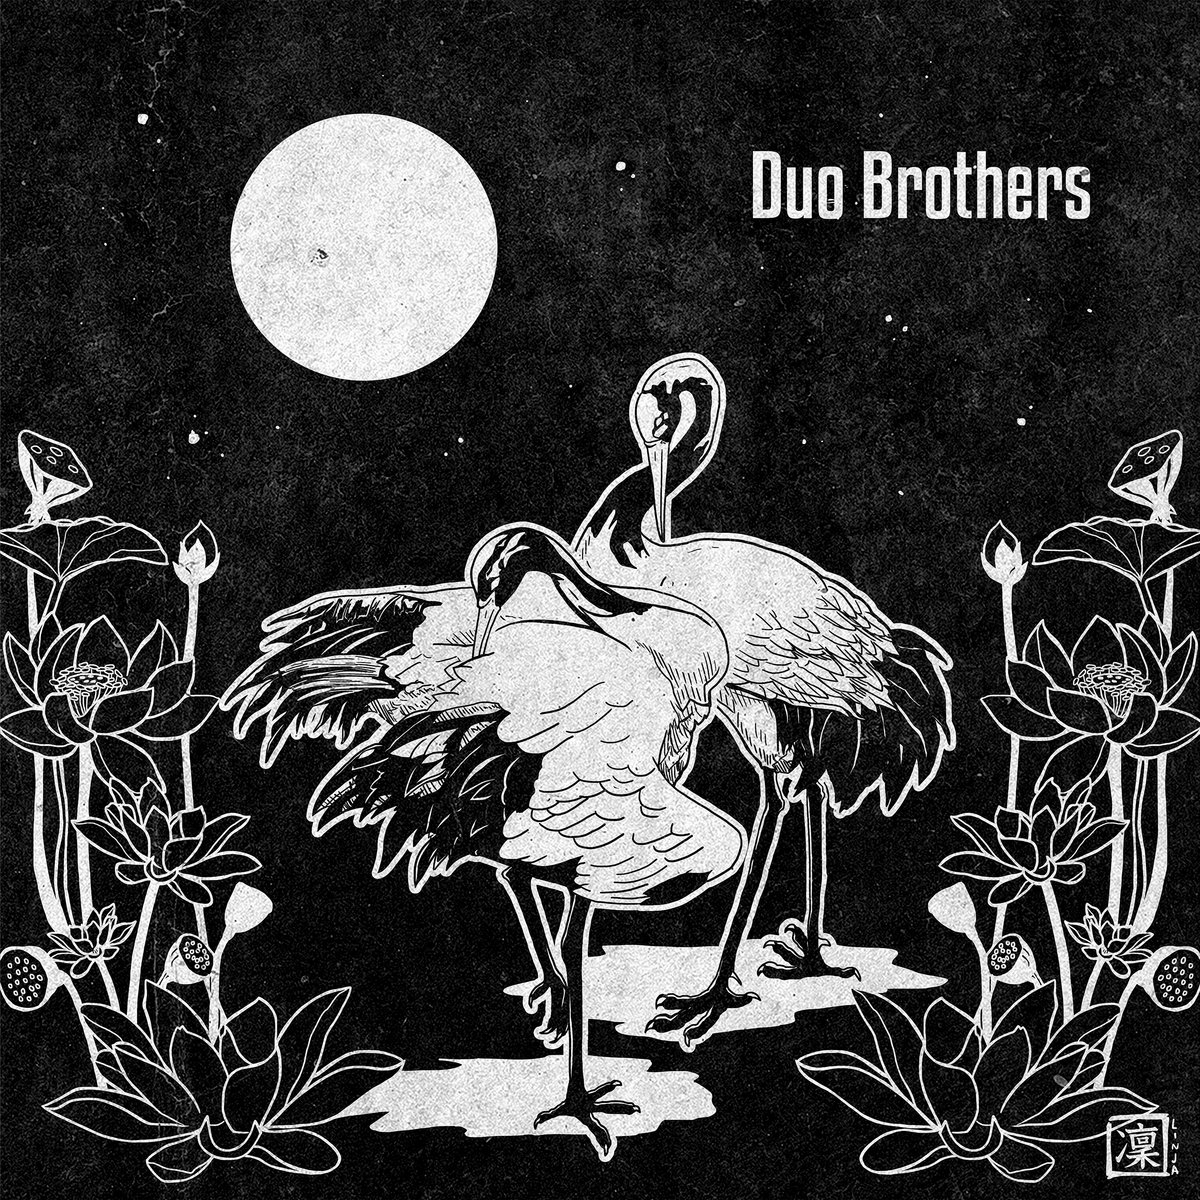 Duo Brothers | Duo Brothers